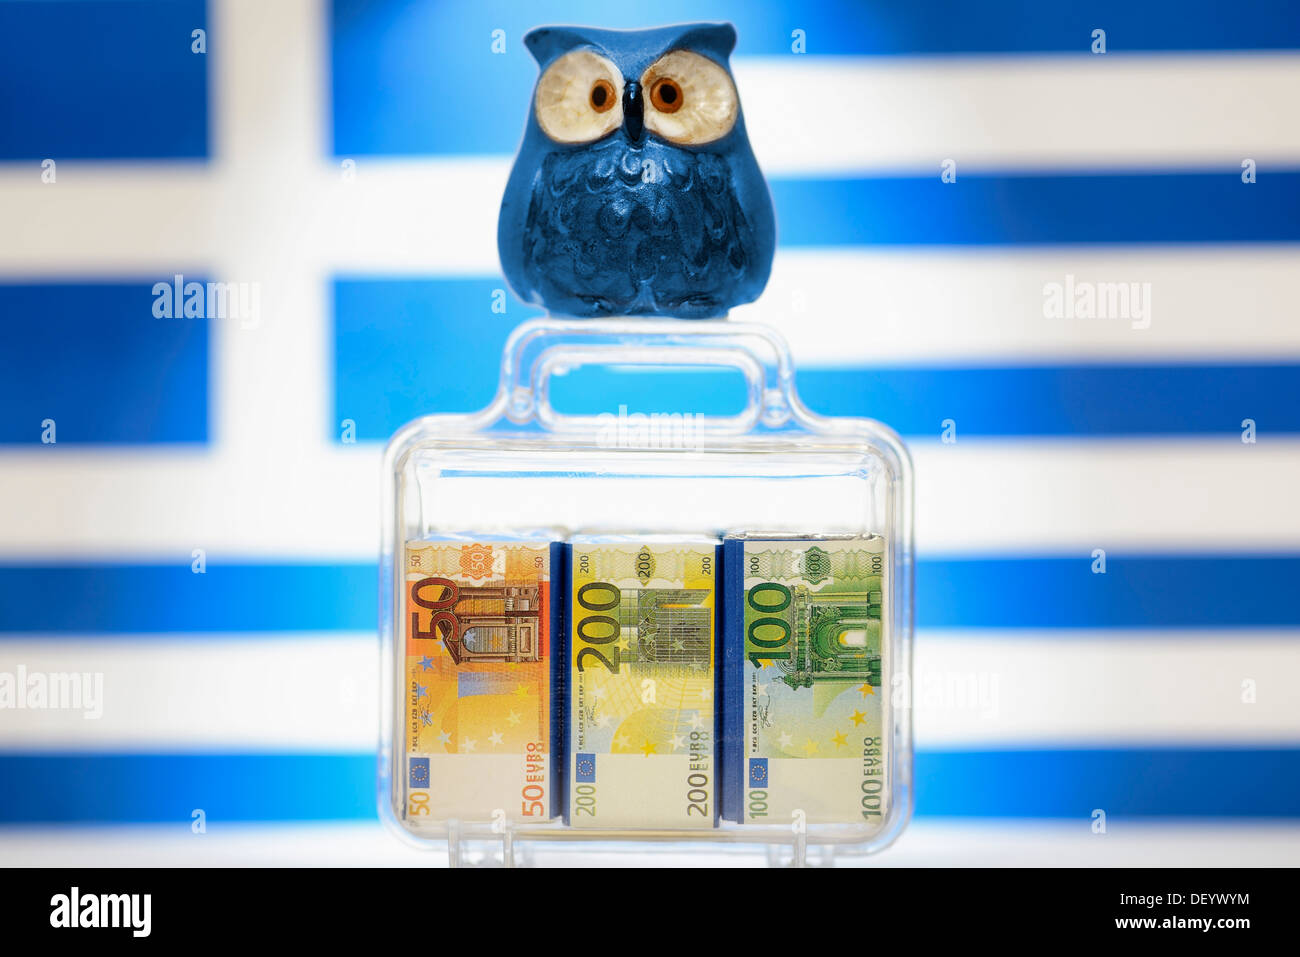 Owl on a suitcase full of money in front of a Greek flag, symbolic image for EU aid to Greece - Stock Image